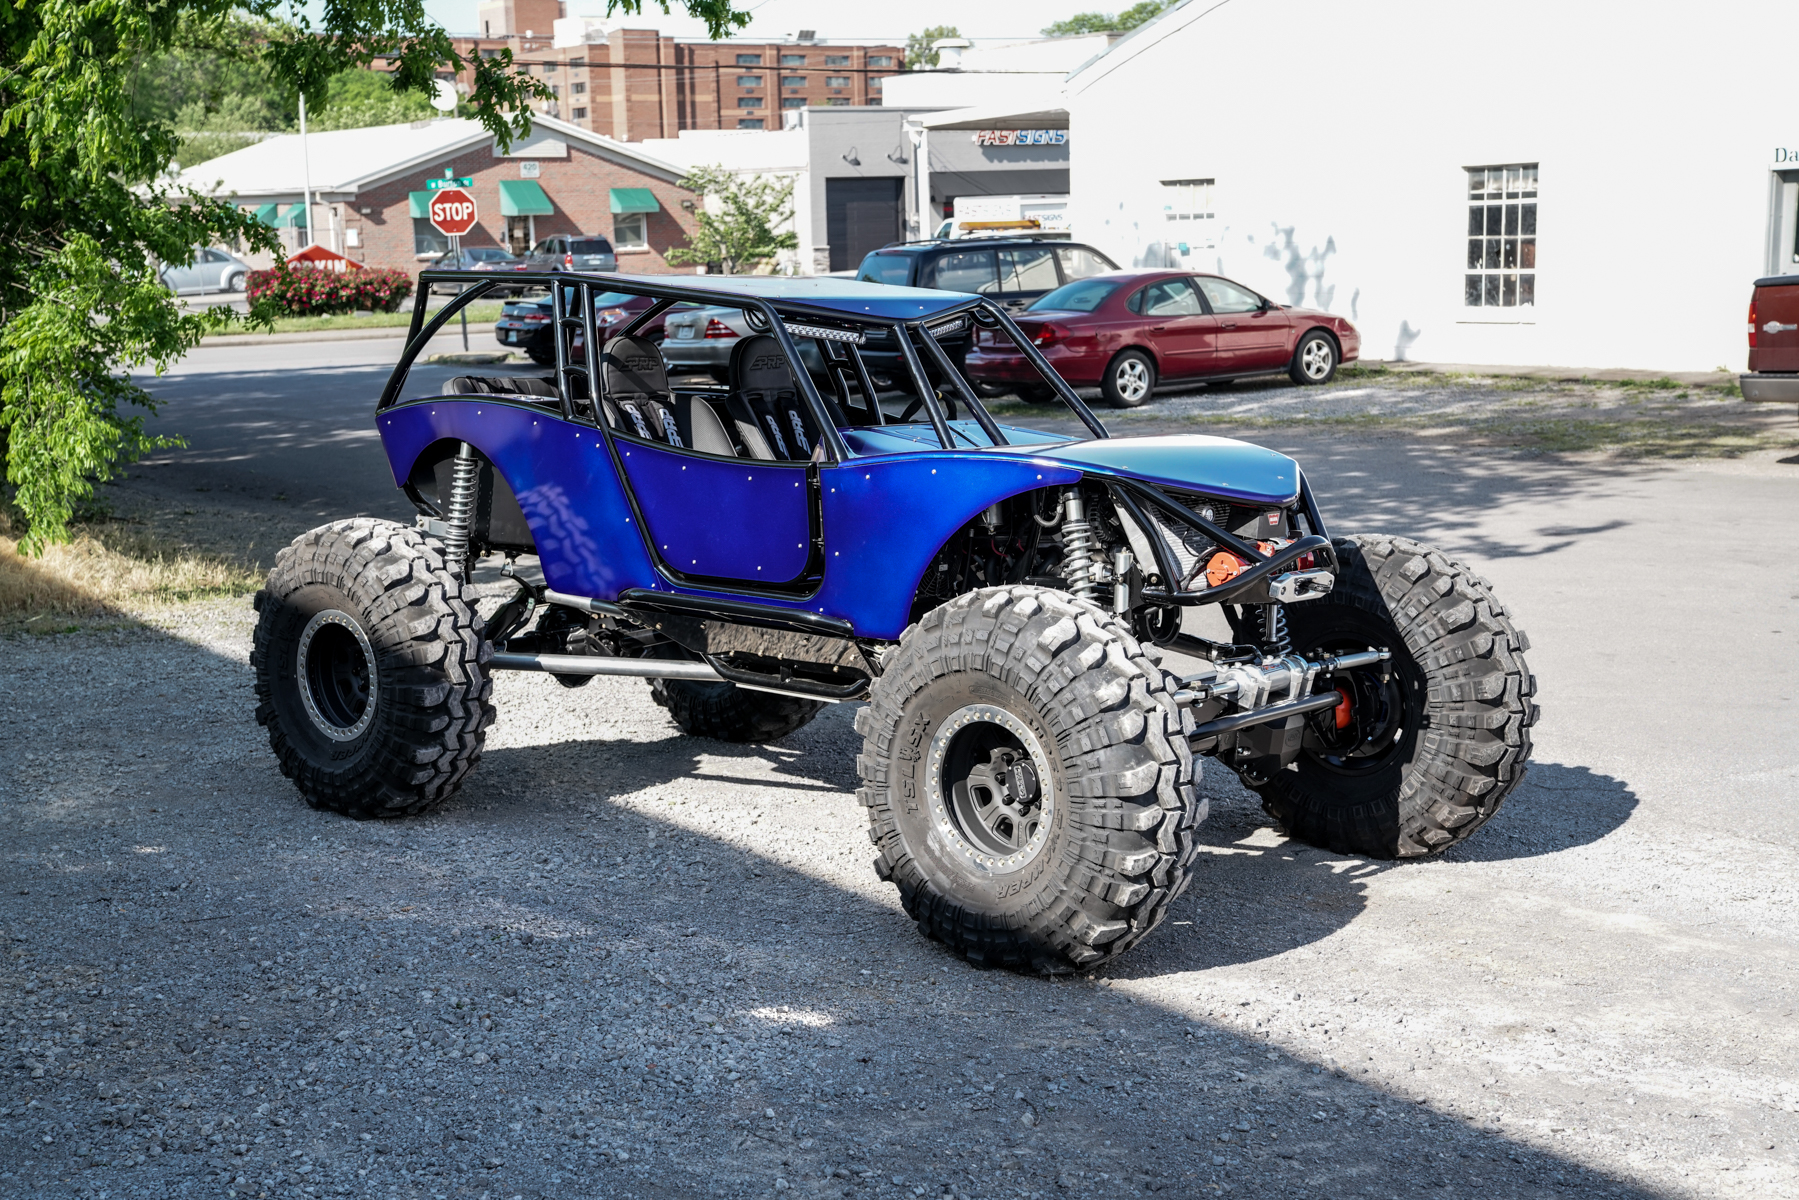 Joe Guzman's 4 Seat Revolution Rock Crawler